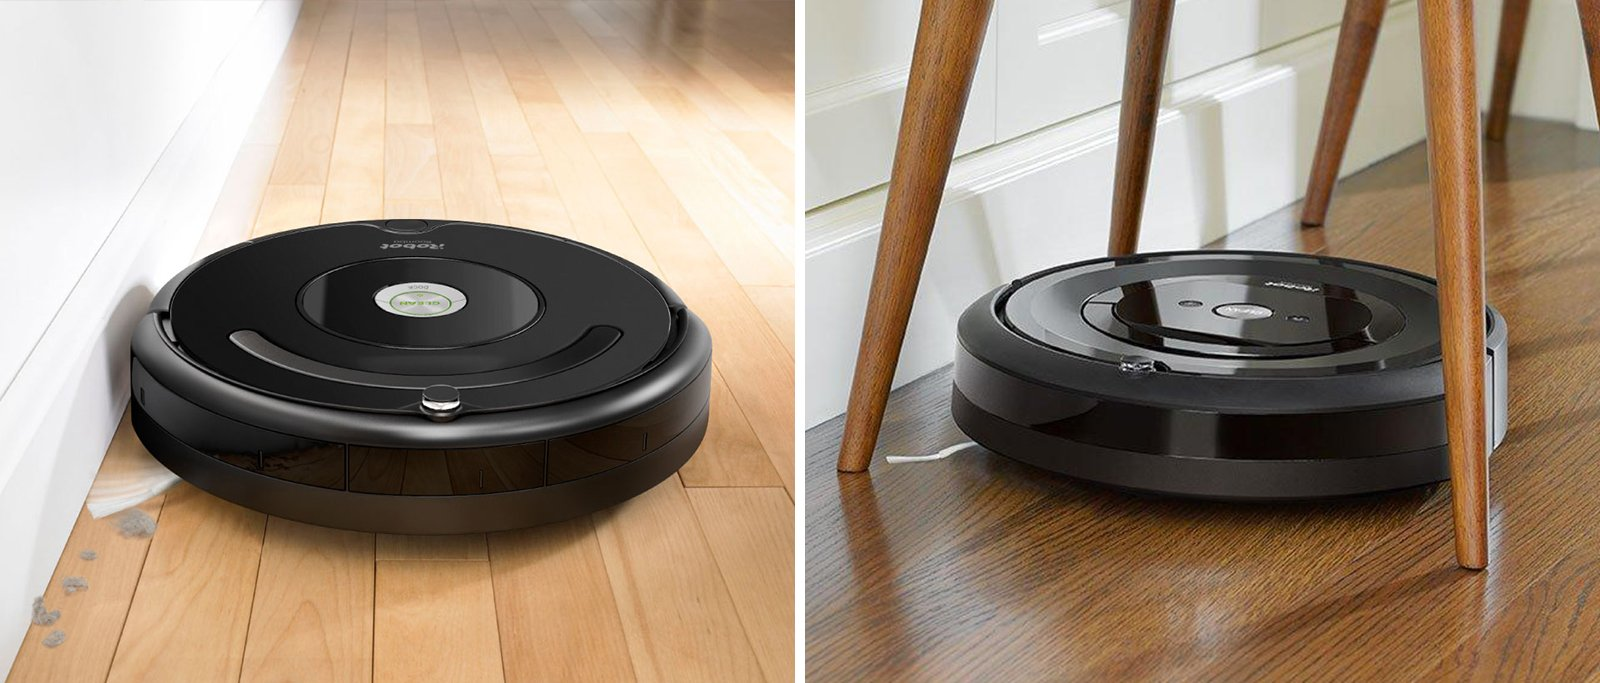 Roomba 675 Vs E5 2020 Do You Need More Suction Power Compare Before Buying